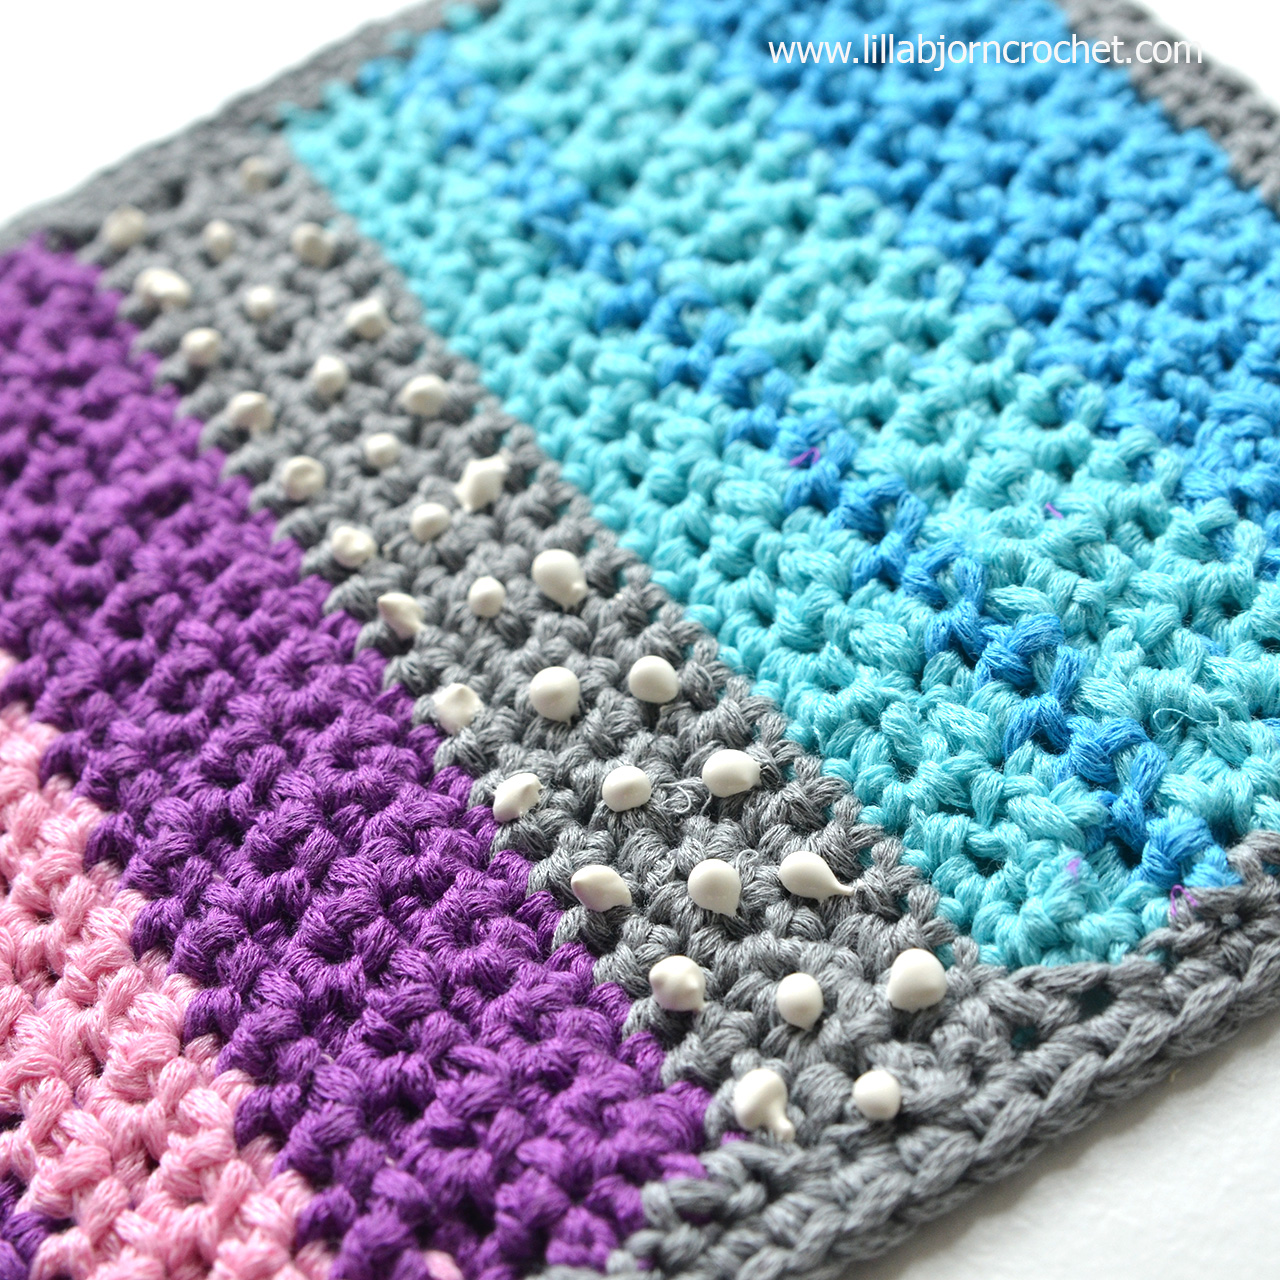 3 ways to make your hand made rug non slip. Review by Lilla Bjorn Crochet